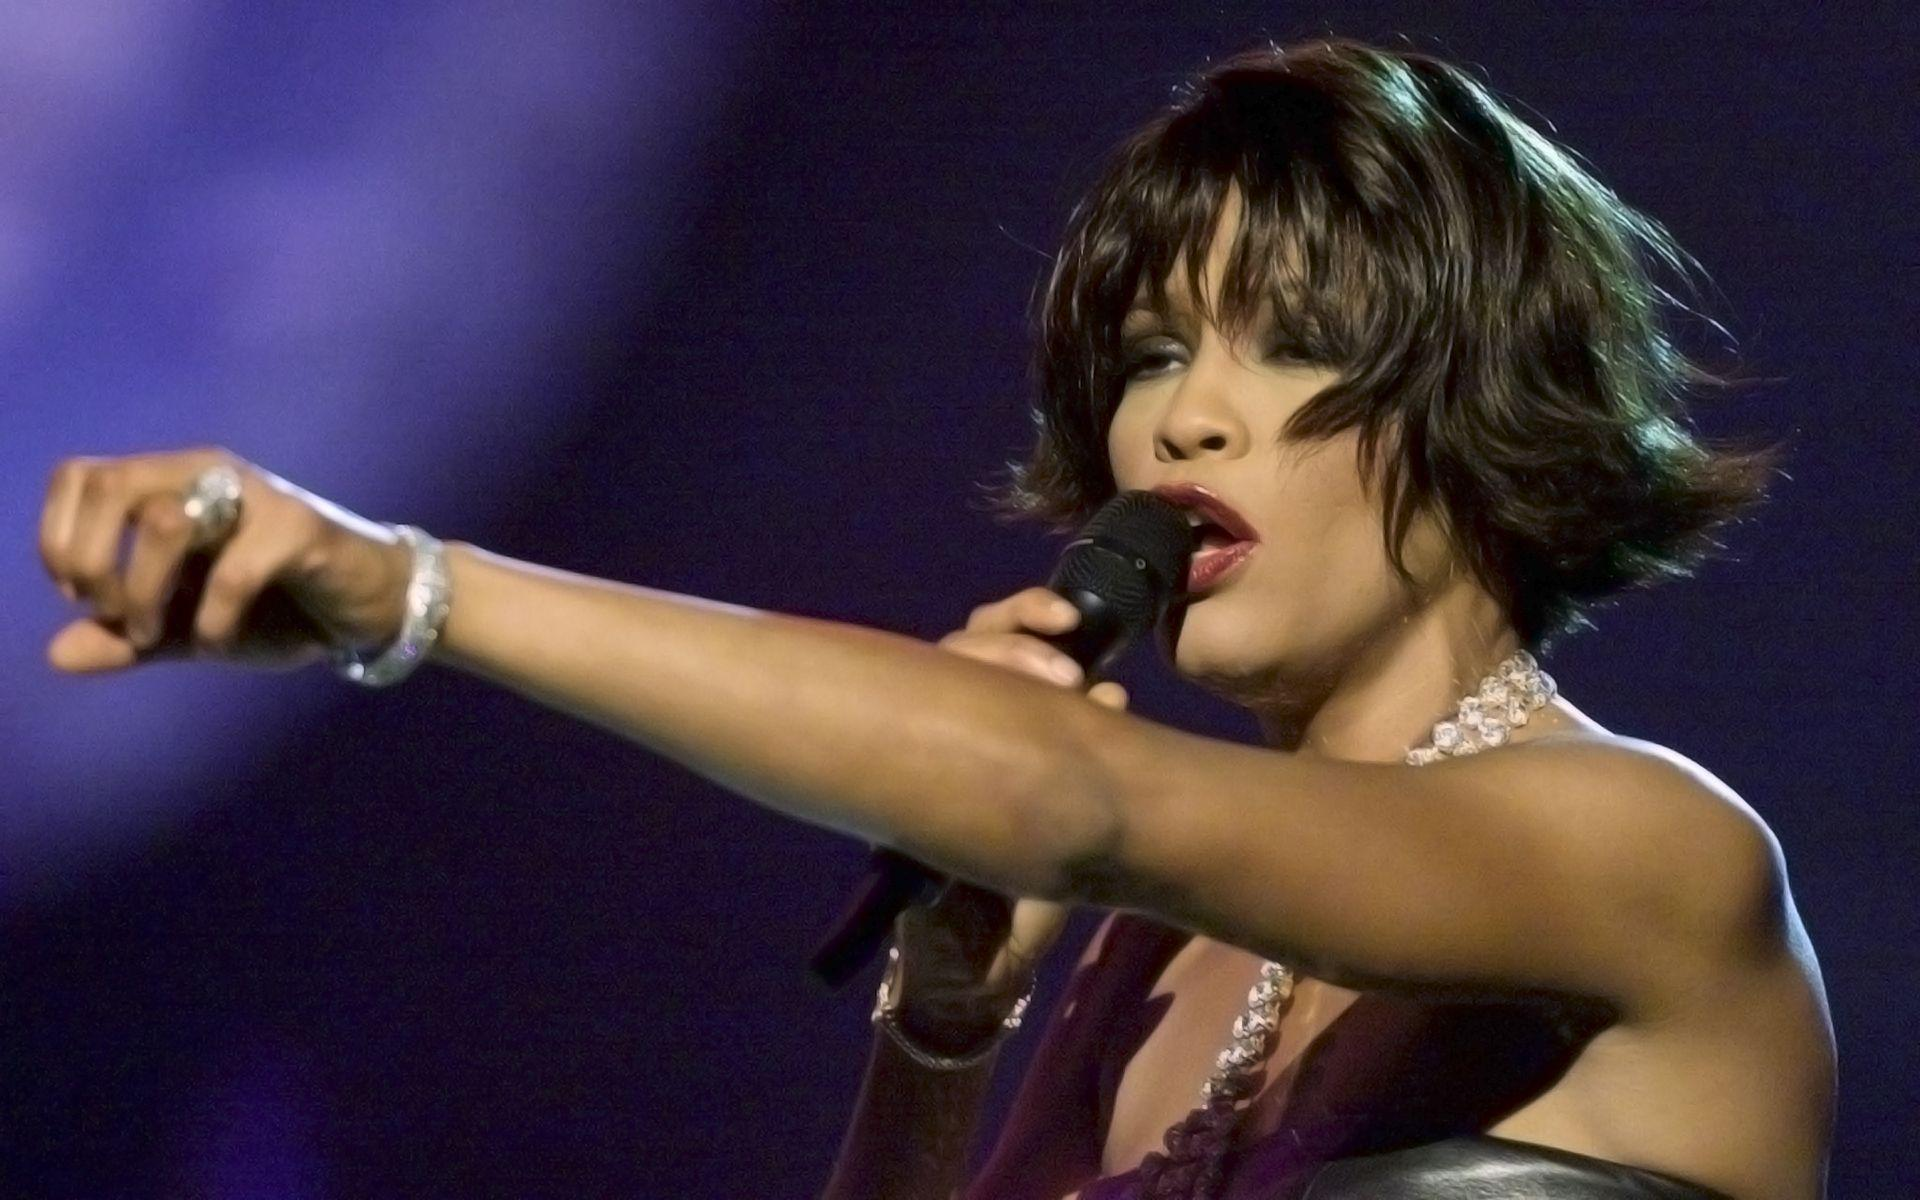 Whitney Houston Singing widescreen wallpapers